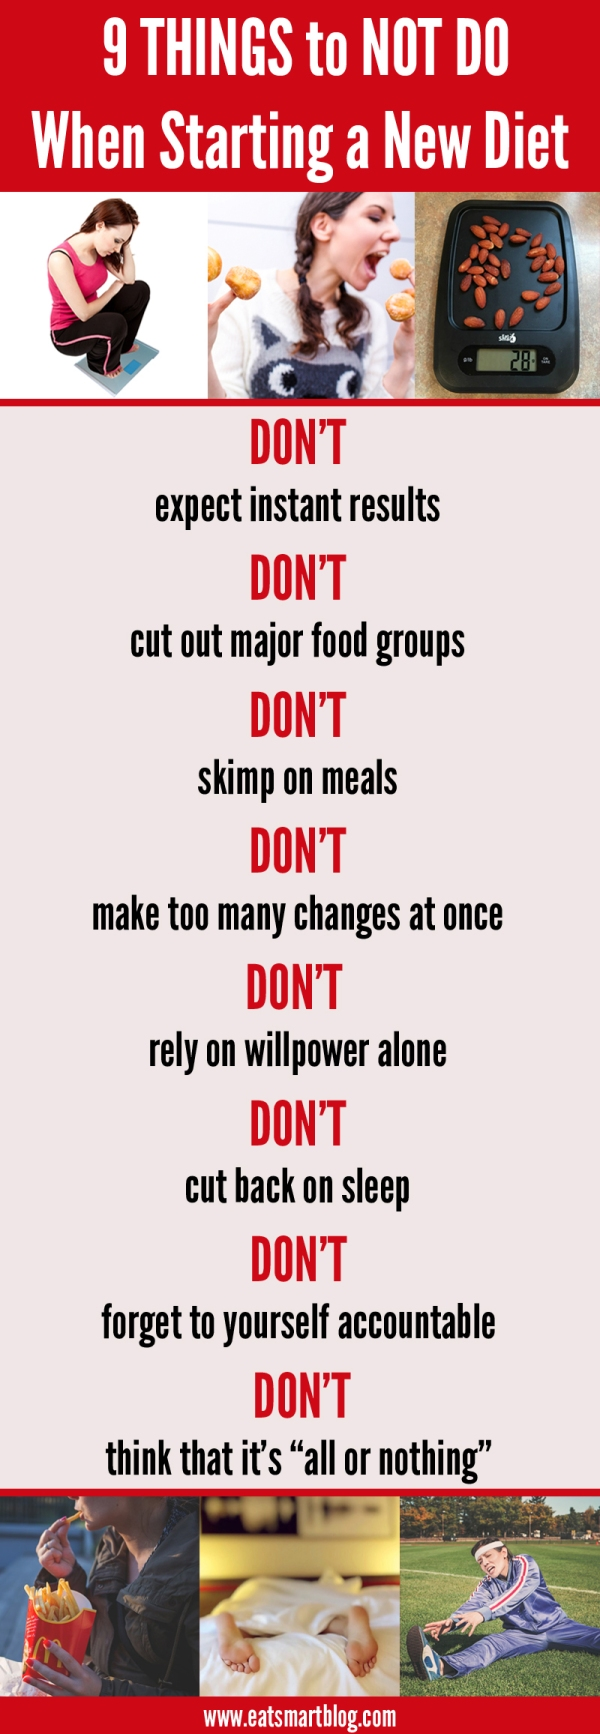 esp_what_not_to_do_on_diet_list